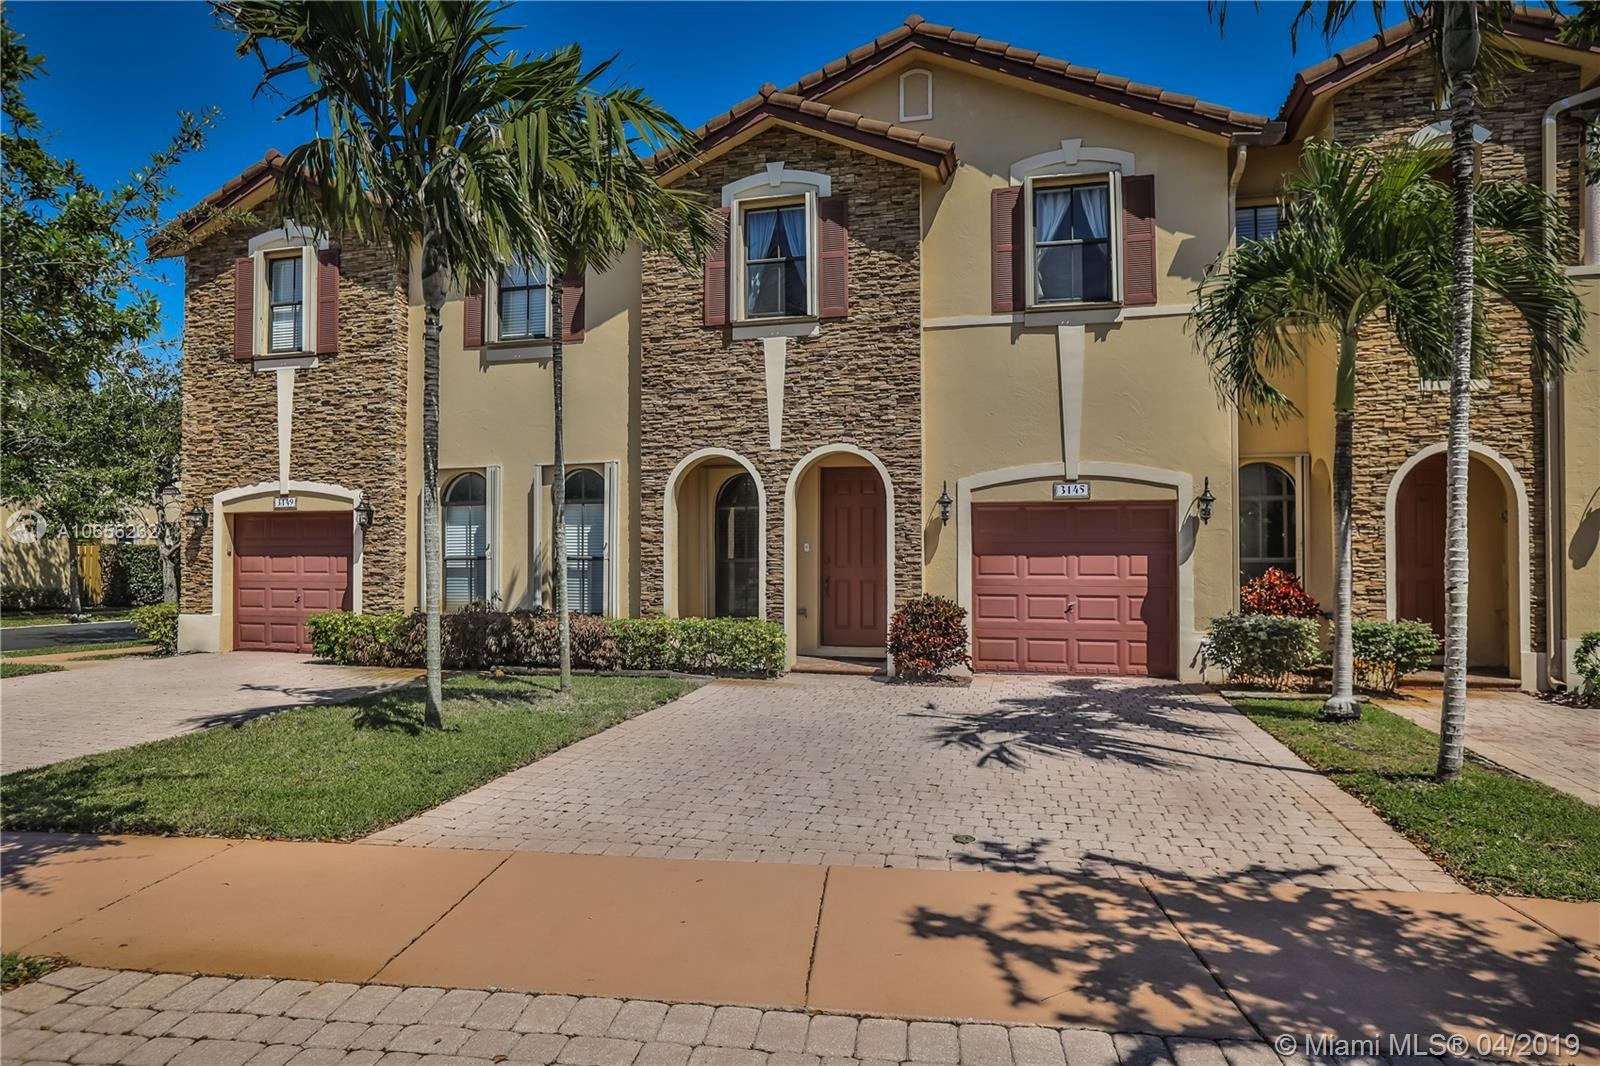 3145 NW 102nd Path, Doral, Florida